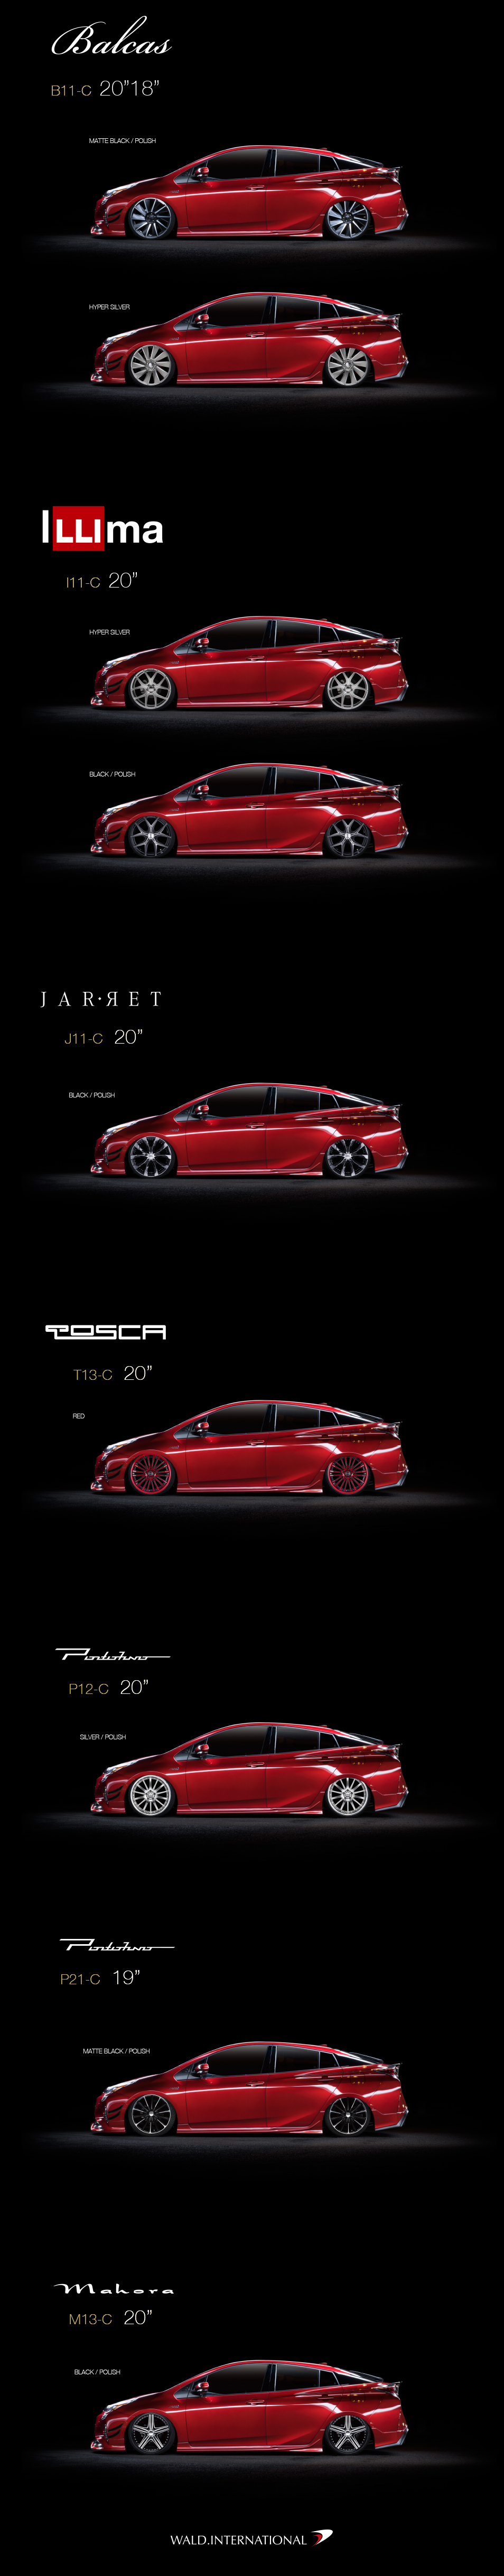 WHEEL - WALD SPORTS LINE - 50 PRIUS : BODY COLOR 3T7